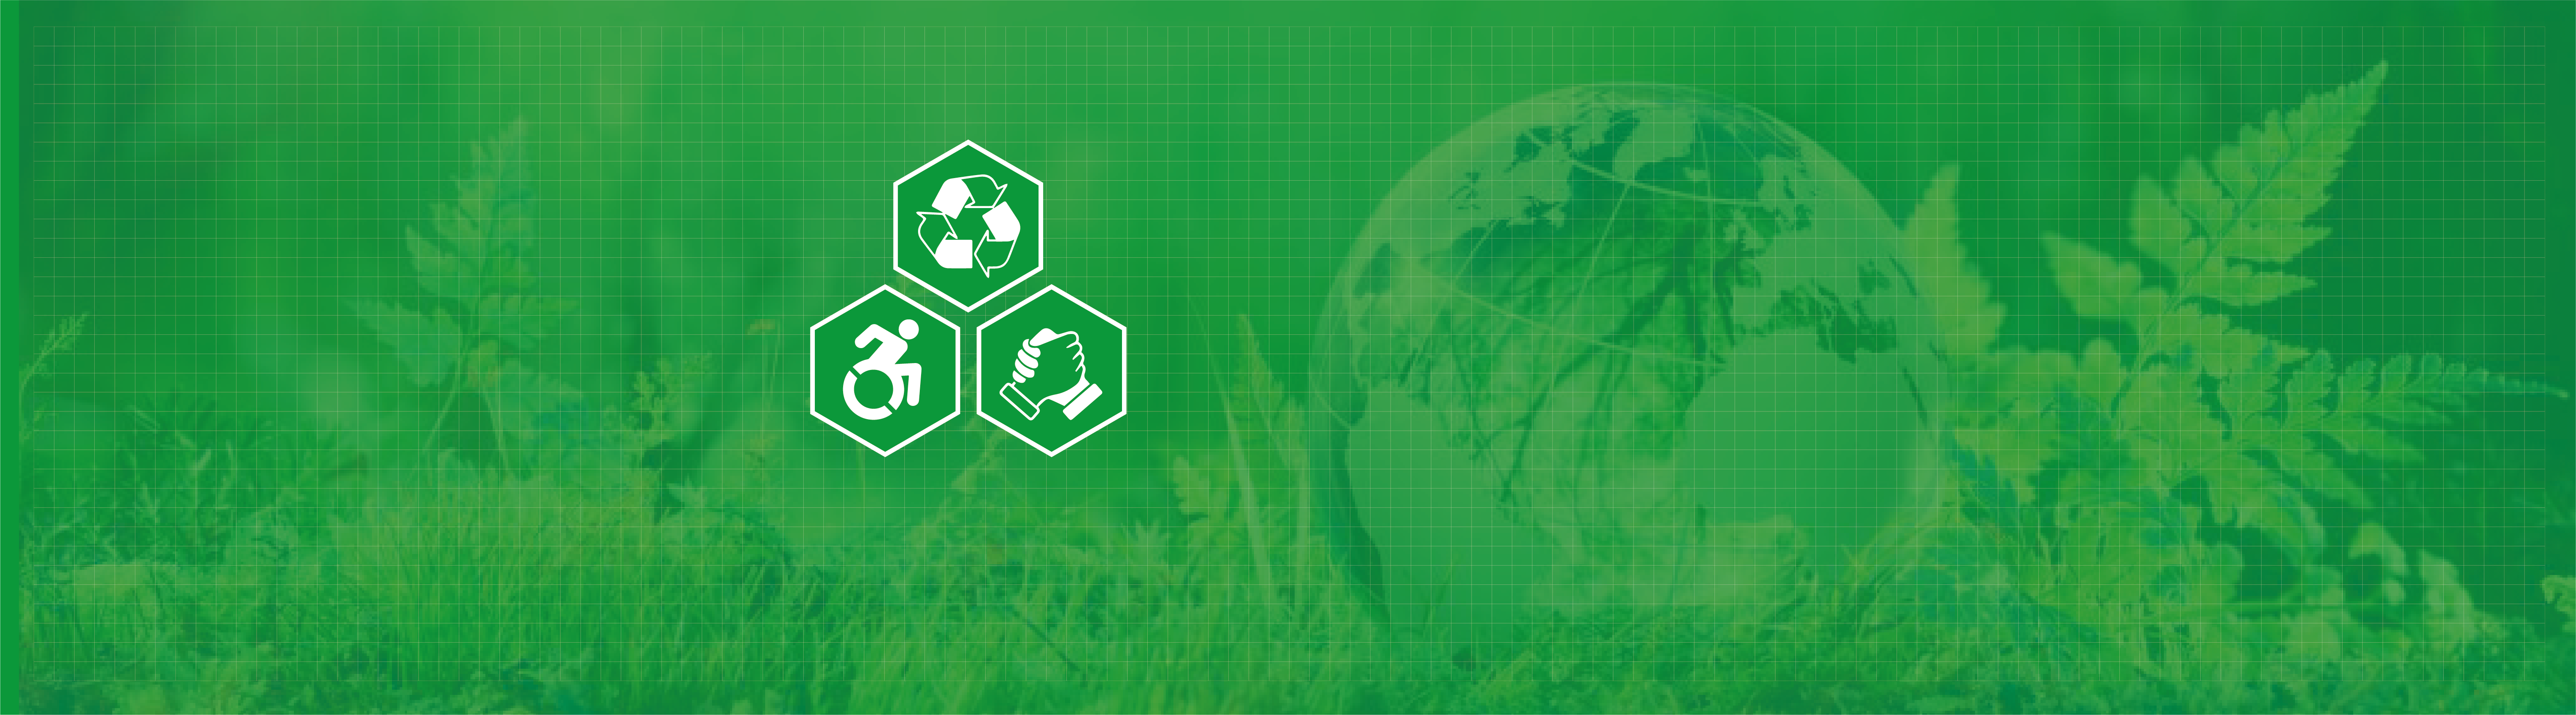 STS Defence Green Web banner